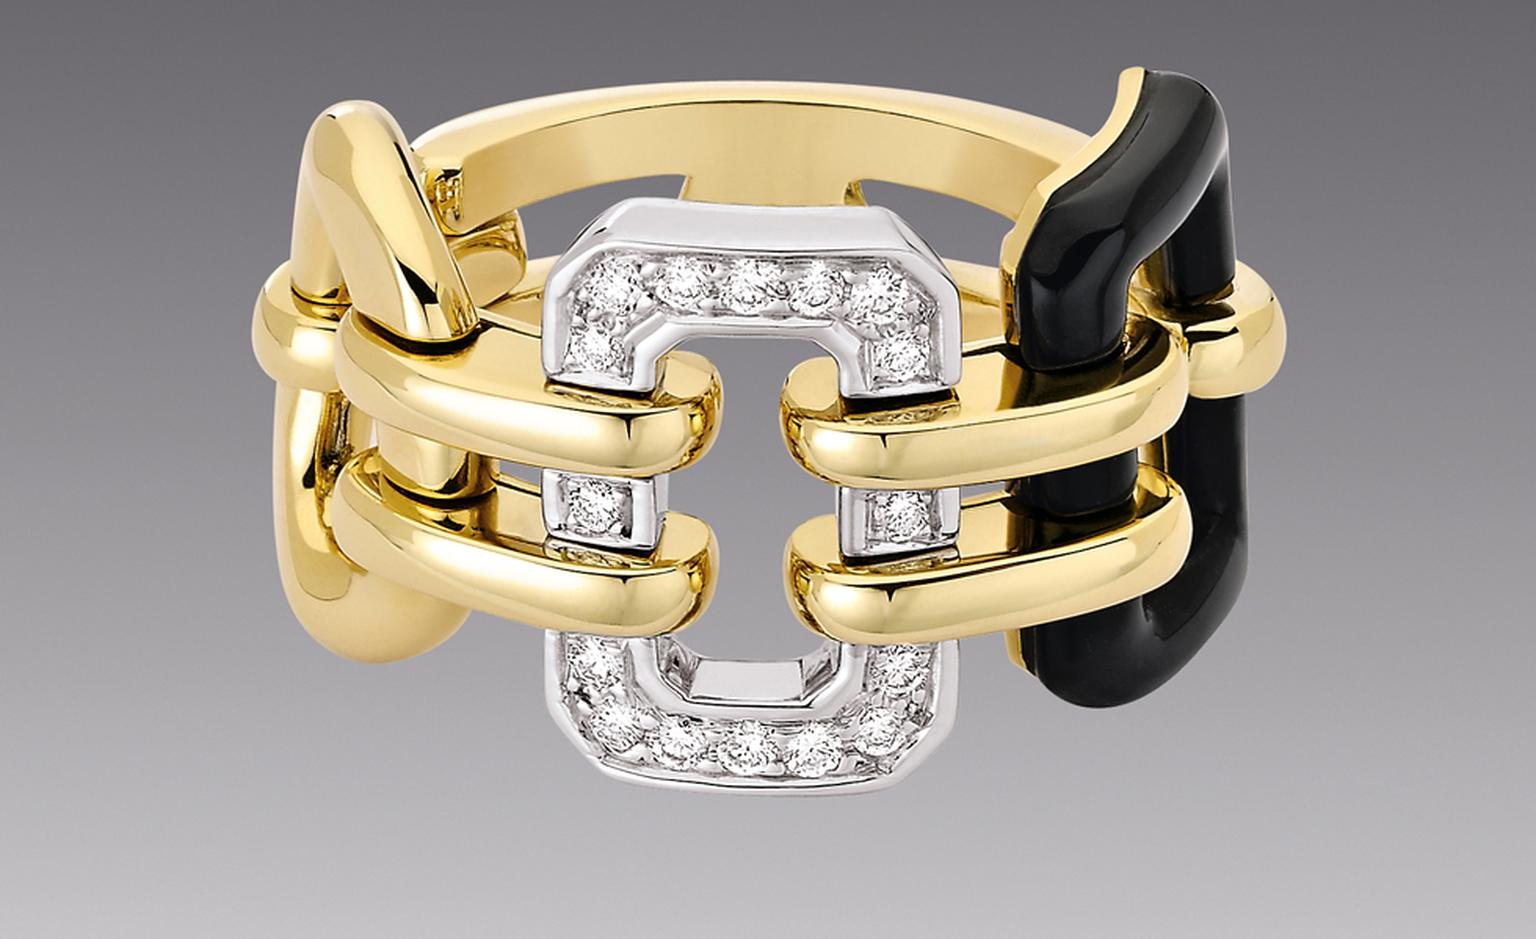 CHANEL, The Premiere ring in 18kt yellow gold and onyx. £4,075